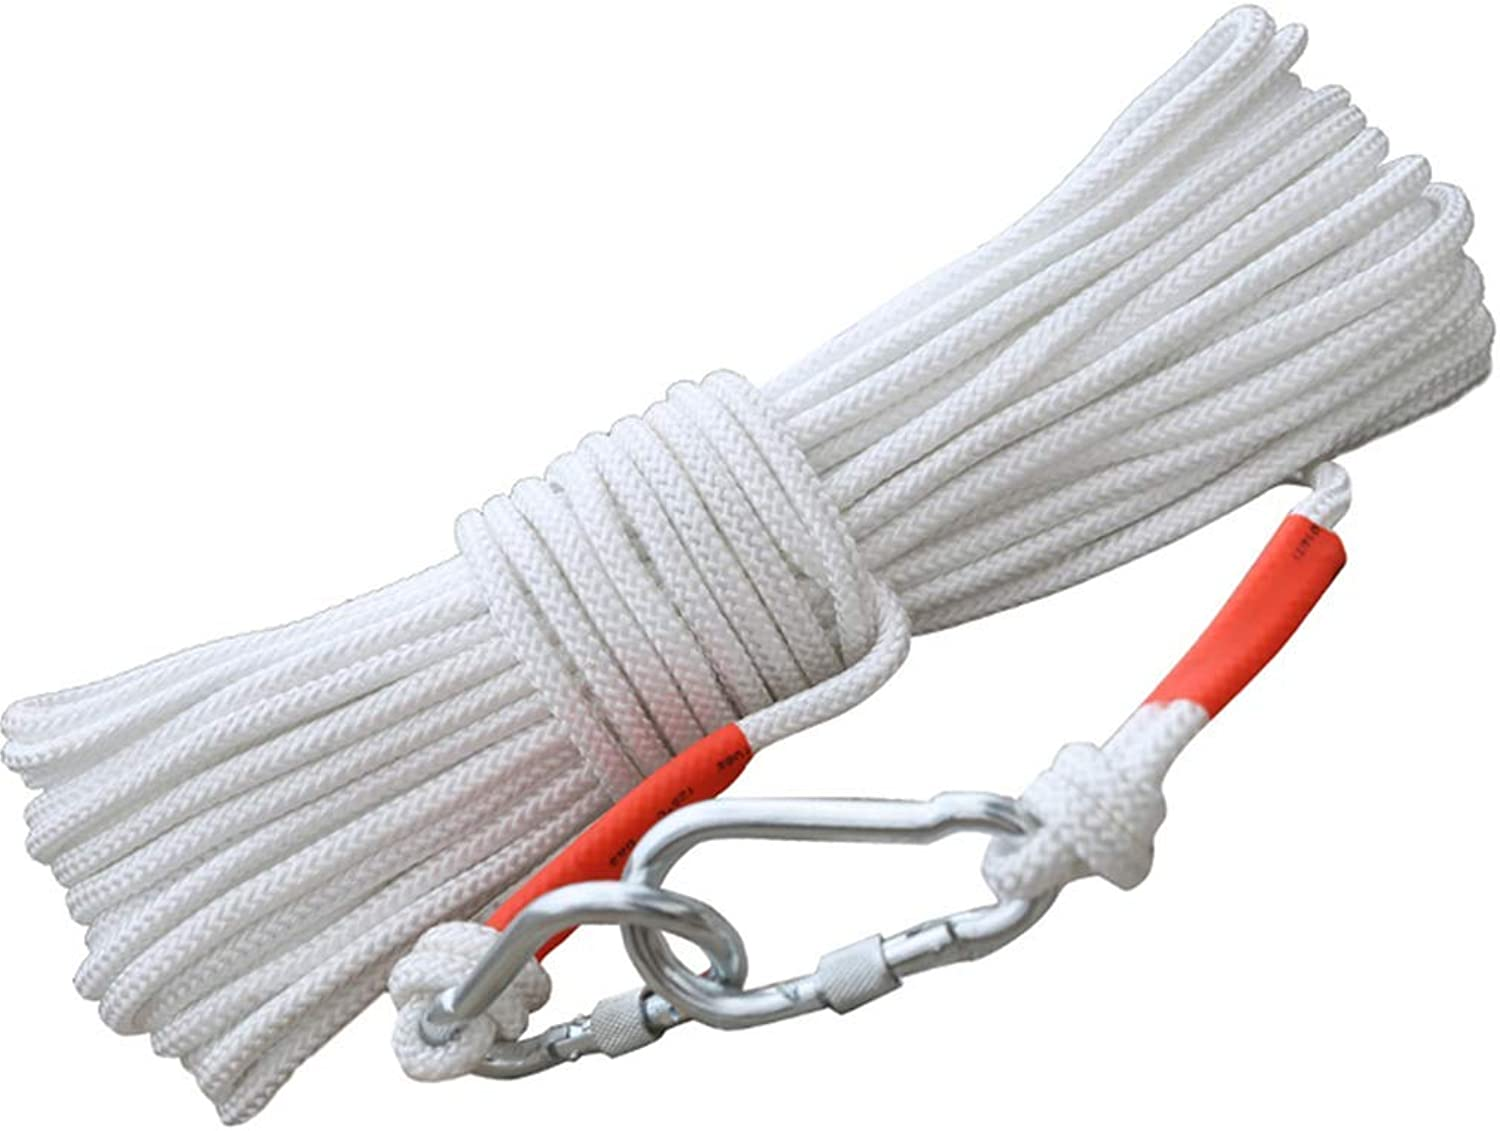 CFJKN Rock Climbing Rope with Carabiner, Professional Static Outdoor Fire Escape Rope Rappelling Rope High Strength Rock Climbing Safety Rope,White_12mm 20m 66ft